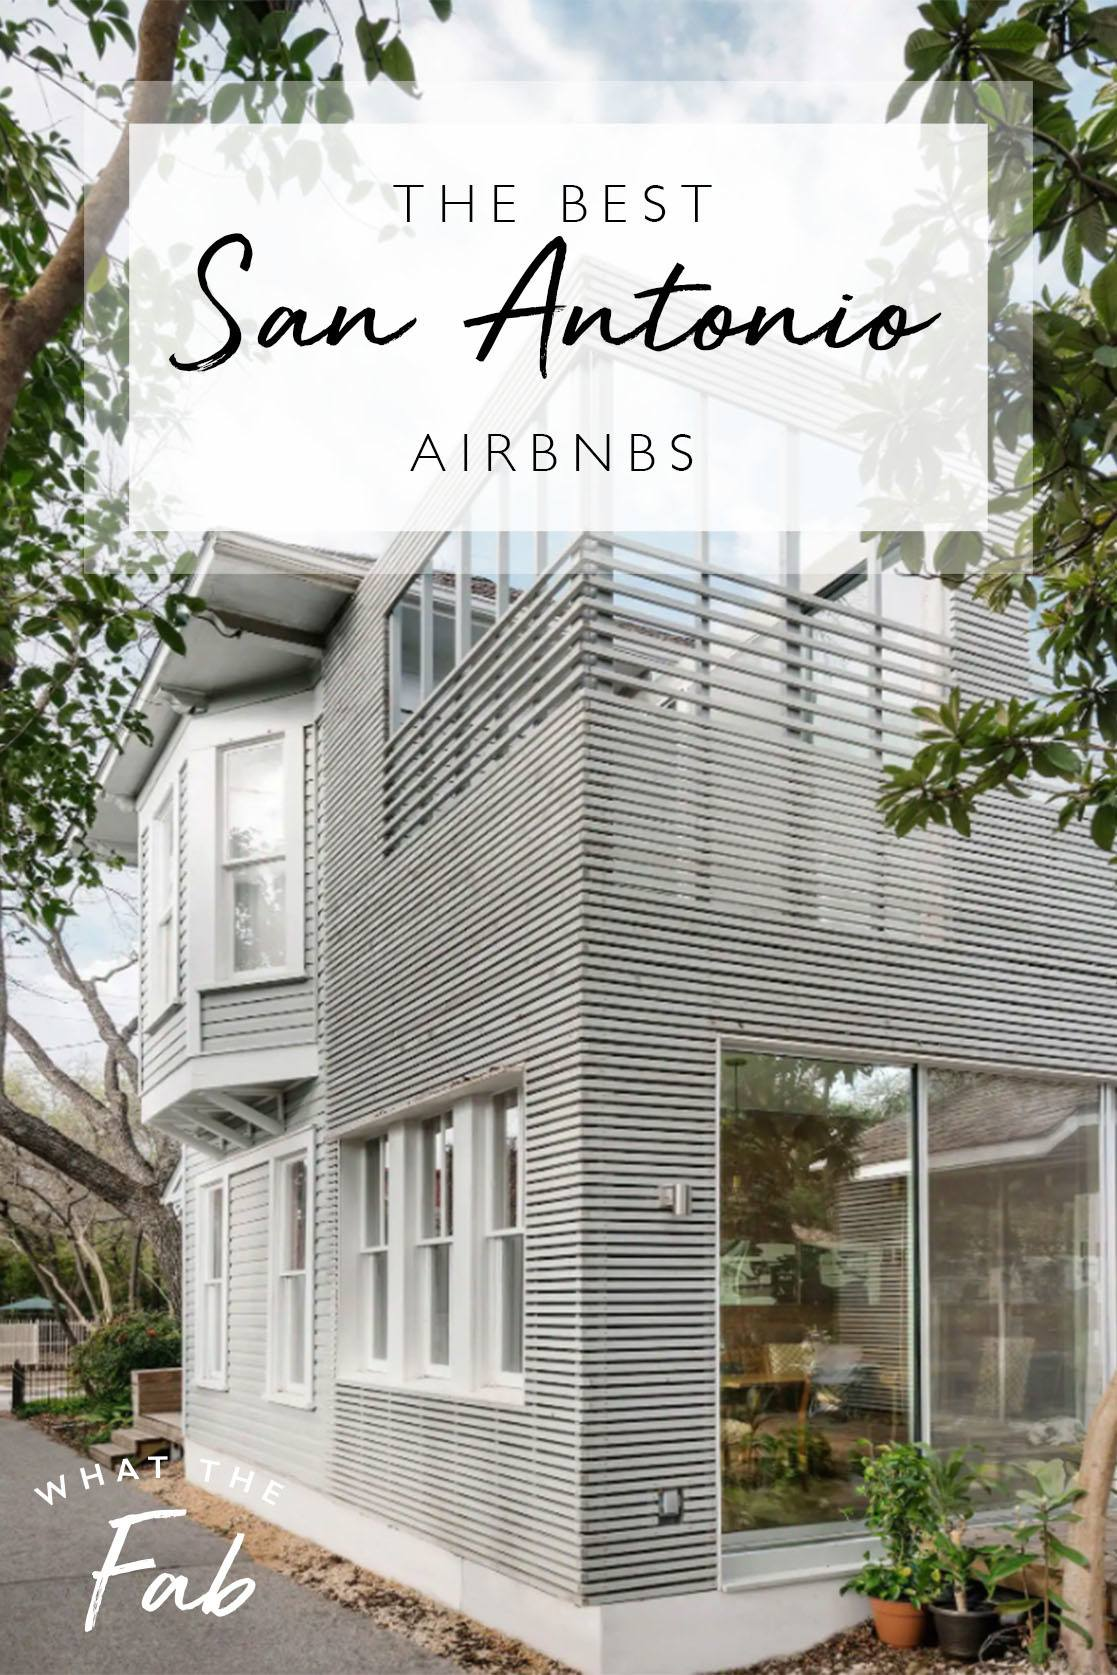 Airbnb San Antonio Texas, by Travel Blogger What The Fab